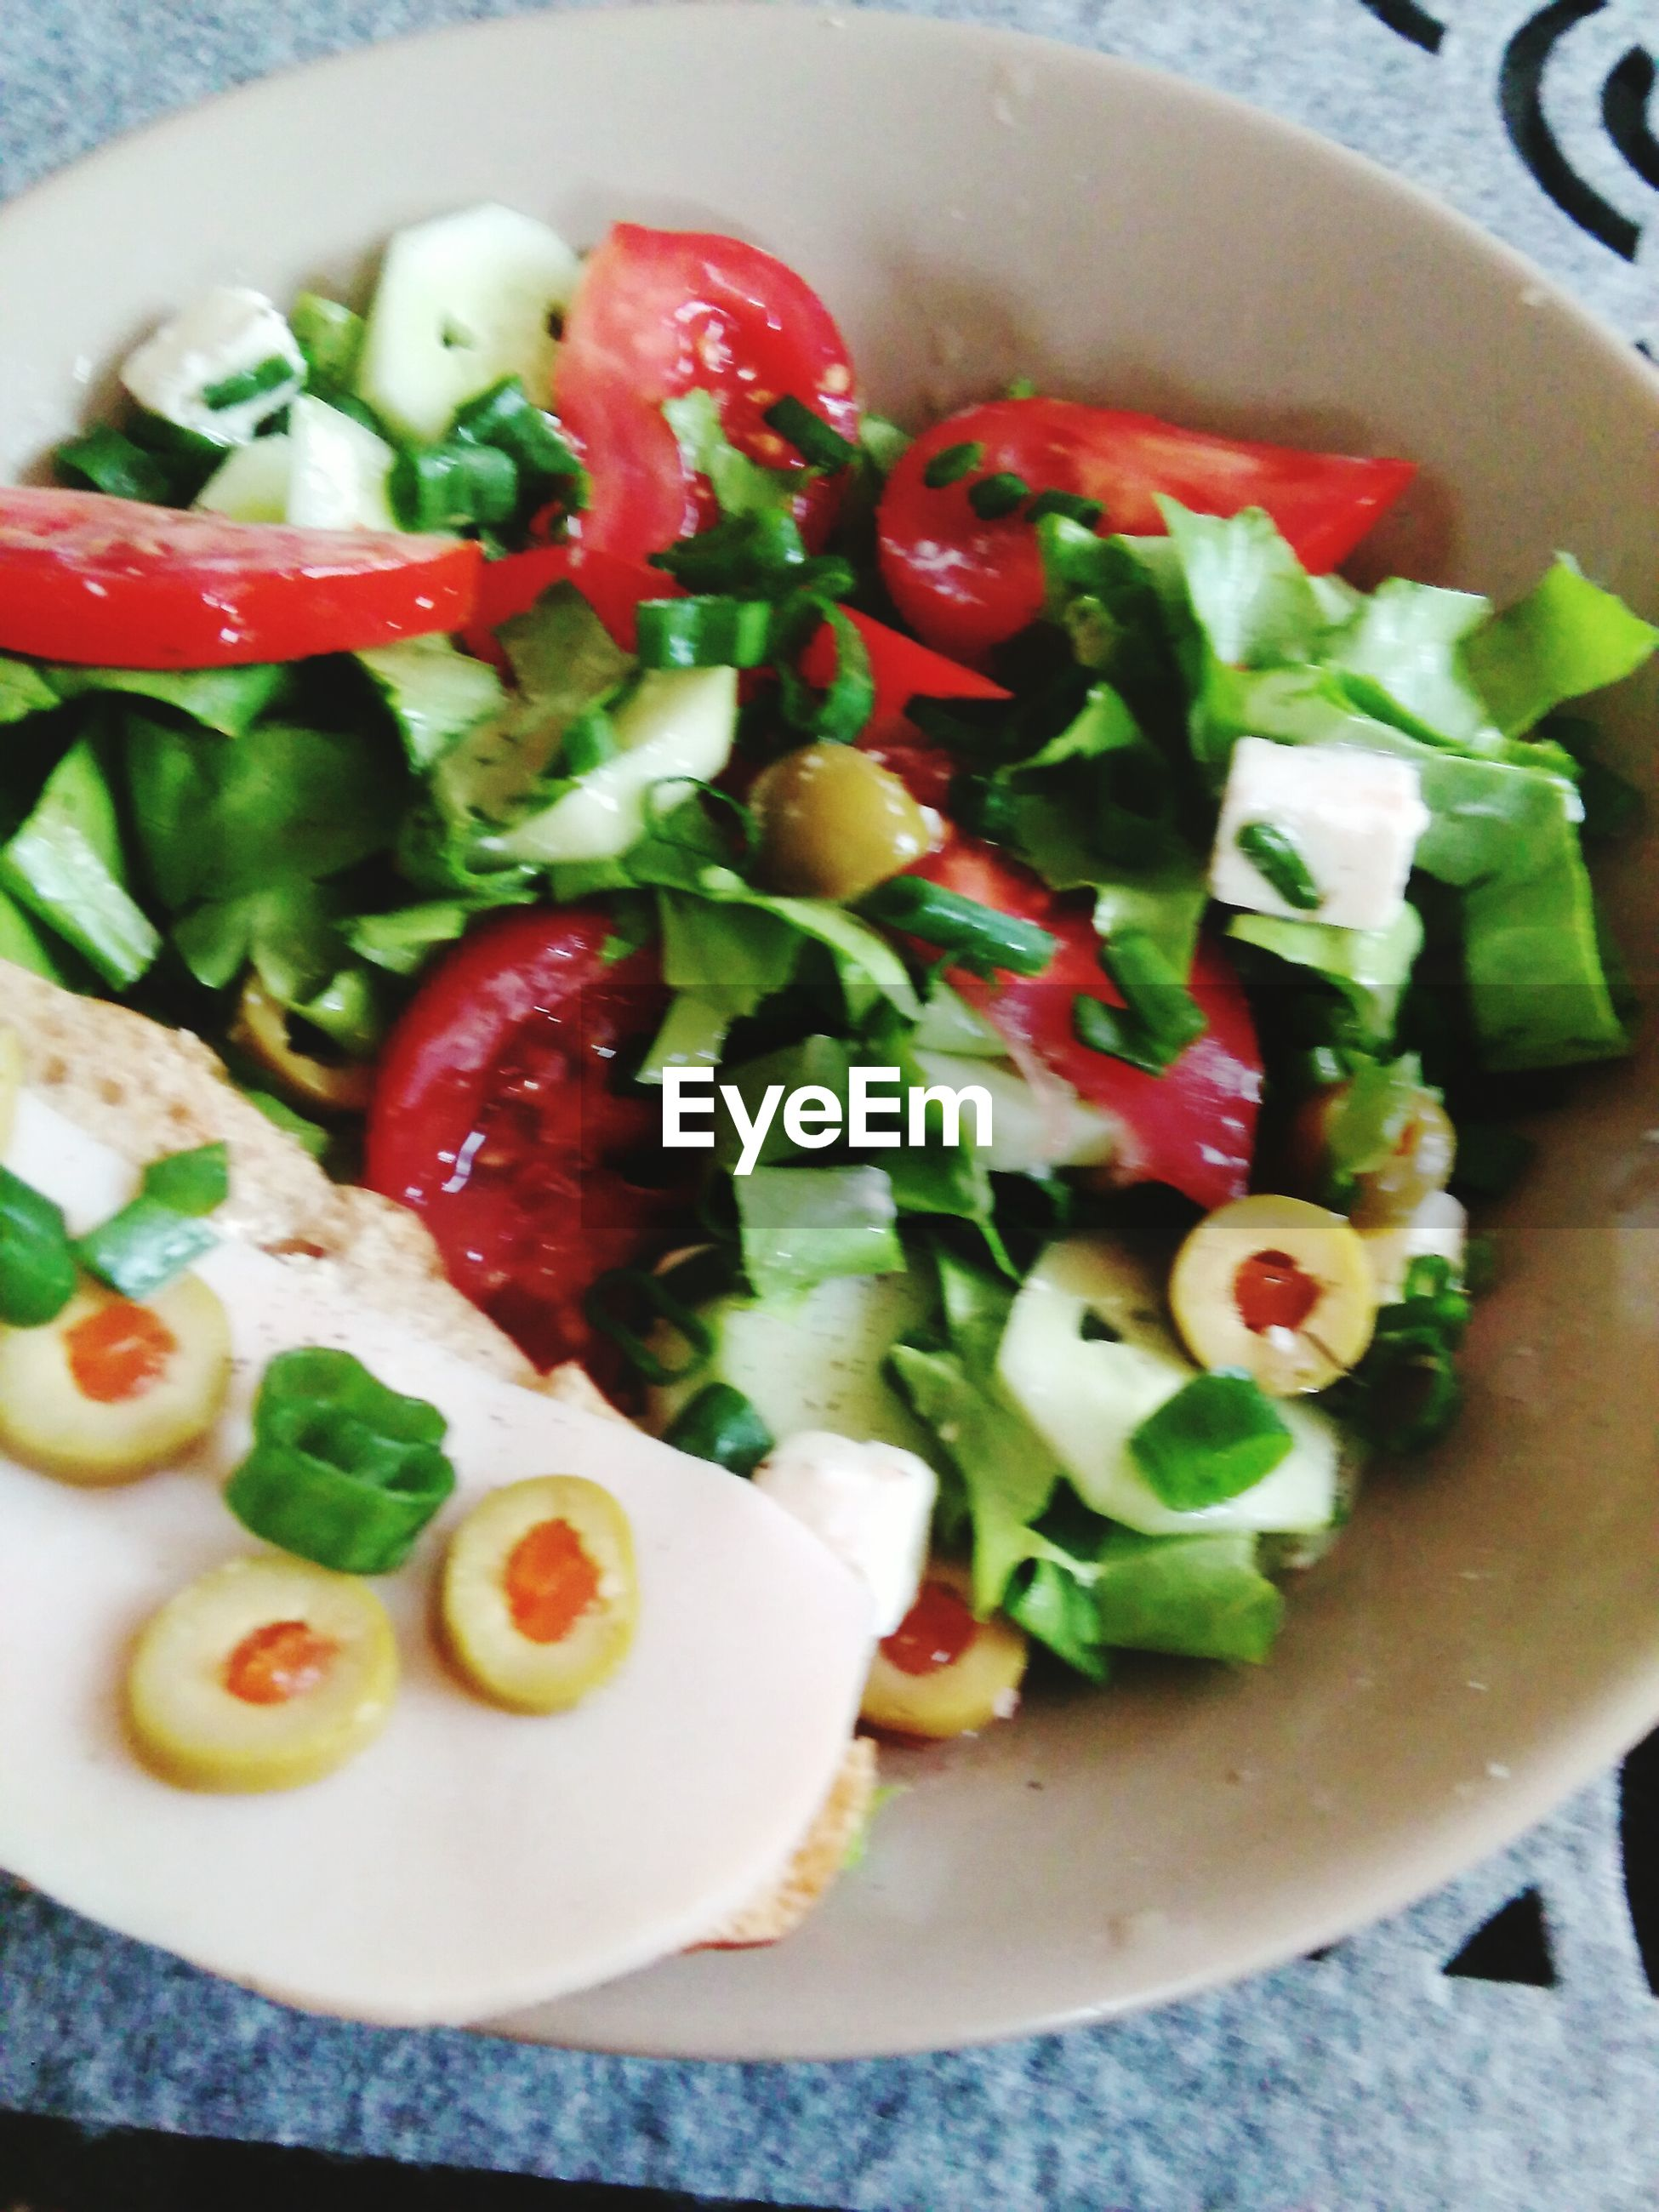 food, food and drink, freshness, indoors, healthy eating, plate, ready-to-eat, tomato, vegetable, salad, still life, close-up, serving size, meal, table, high angle view, bowl, indulgence, directly above, served